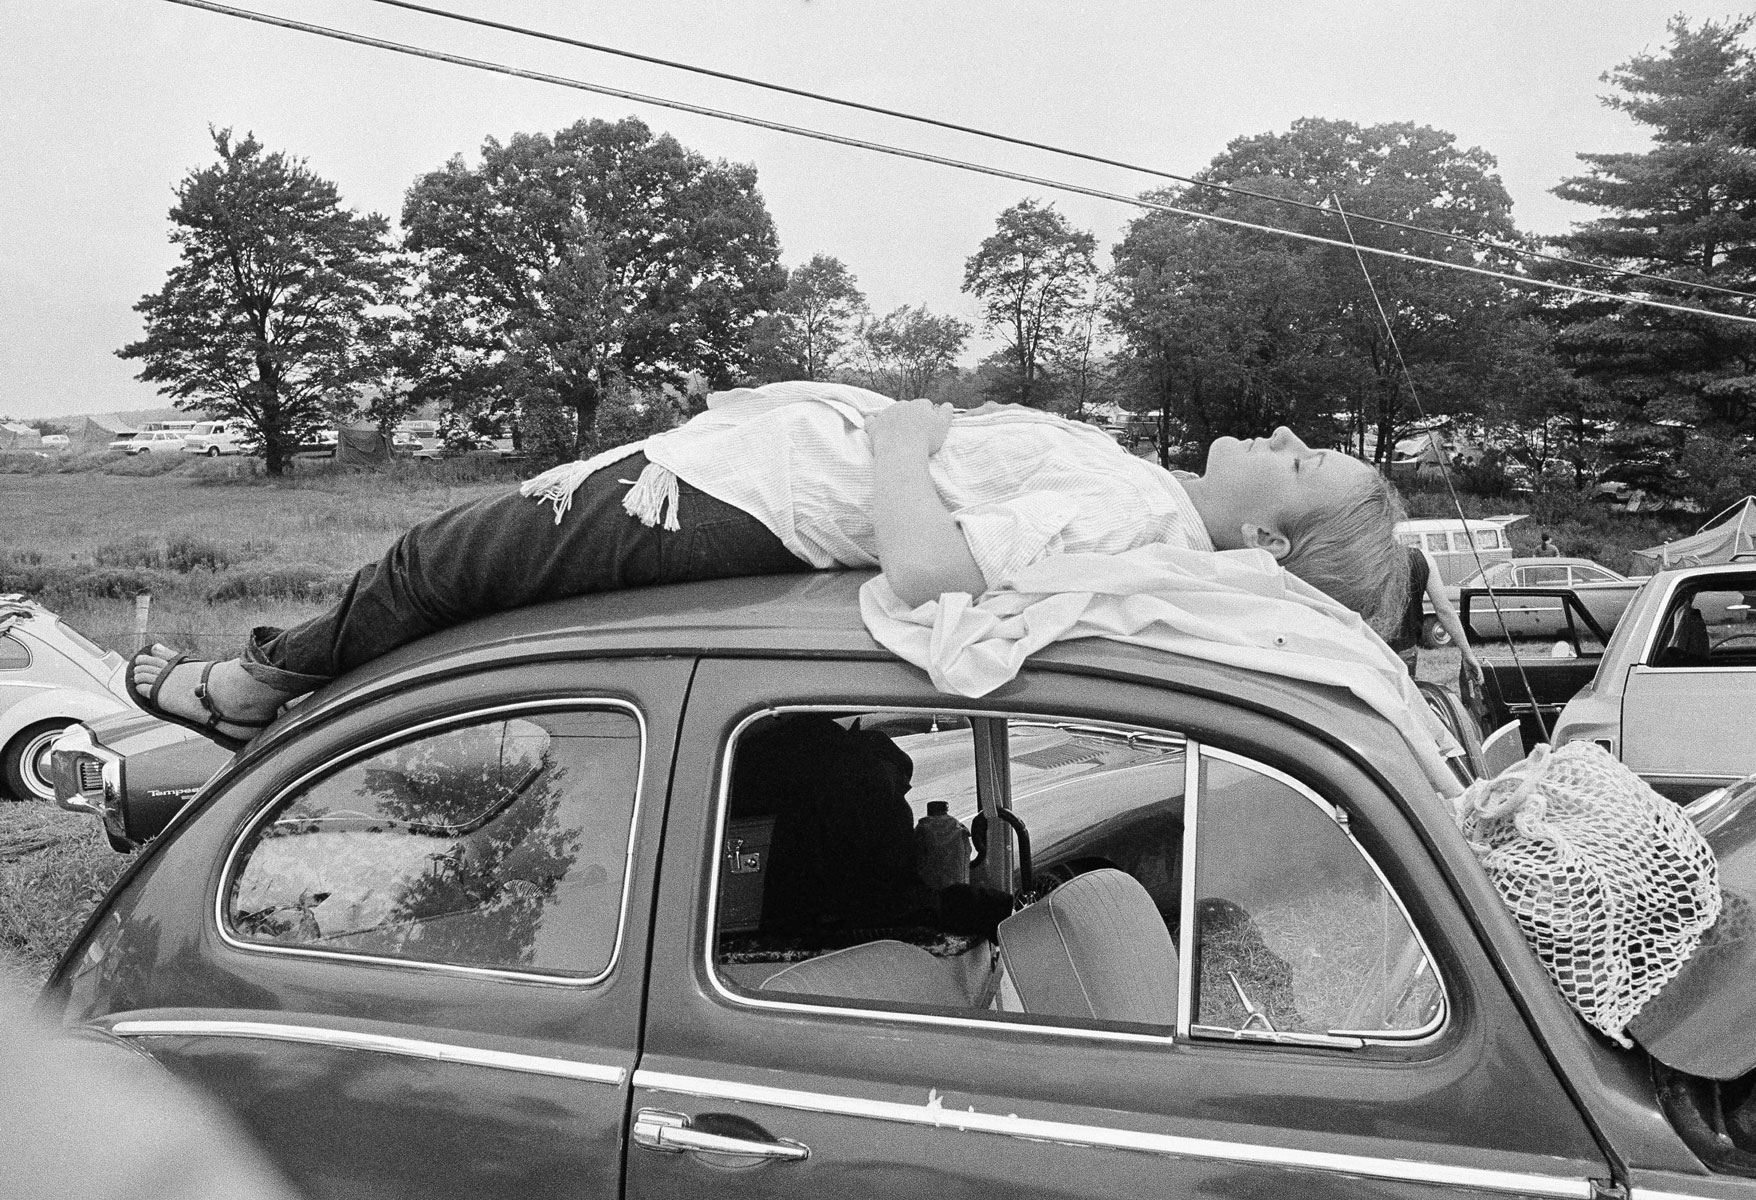 Aug. 16, 1969 file photo, a young woman naps on top of her car while trying to reach the Woodstock Music and Art Festival in Bethel, N.Y. Organizers had sold 186,000 tickets; ultimately an estimated 400,000 people showed up for the festival on a 600-acre parcel of farmland. (Фото: AP/East News)